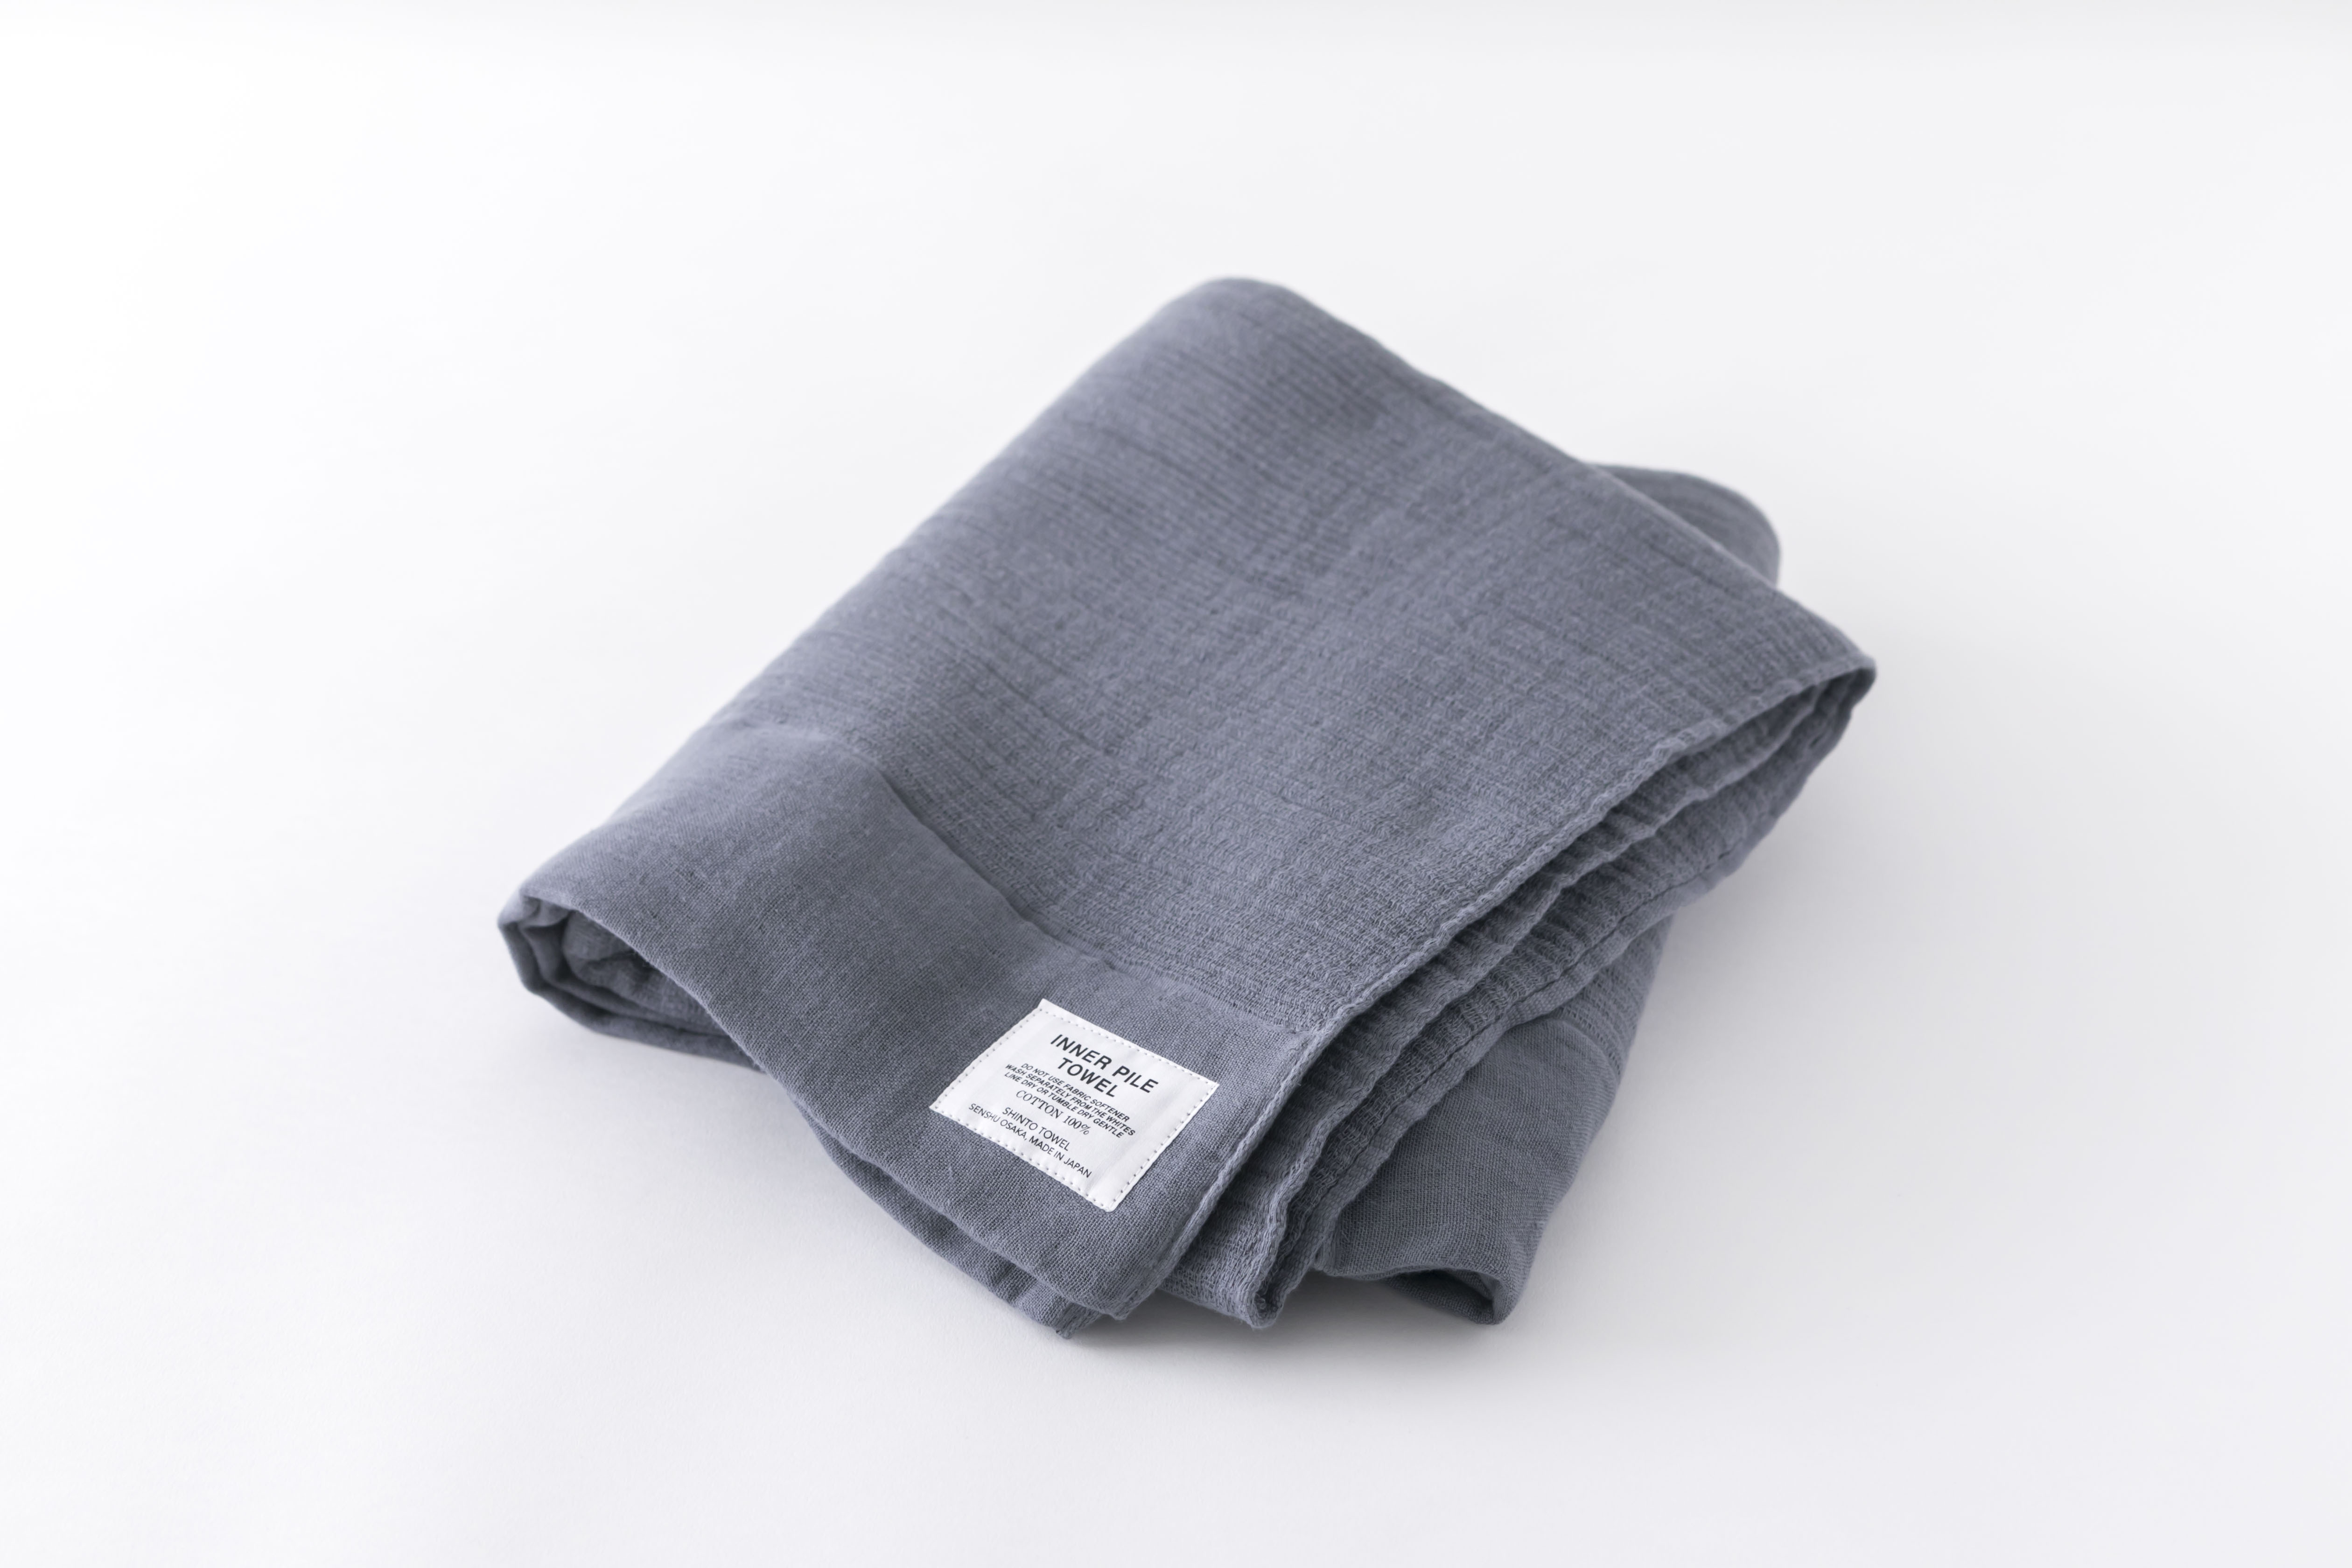 INNER PILE TOWEL : BATH TOWEL (Charcoal) / SHINTO TOWEL